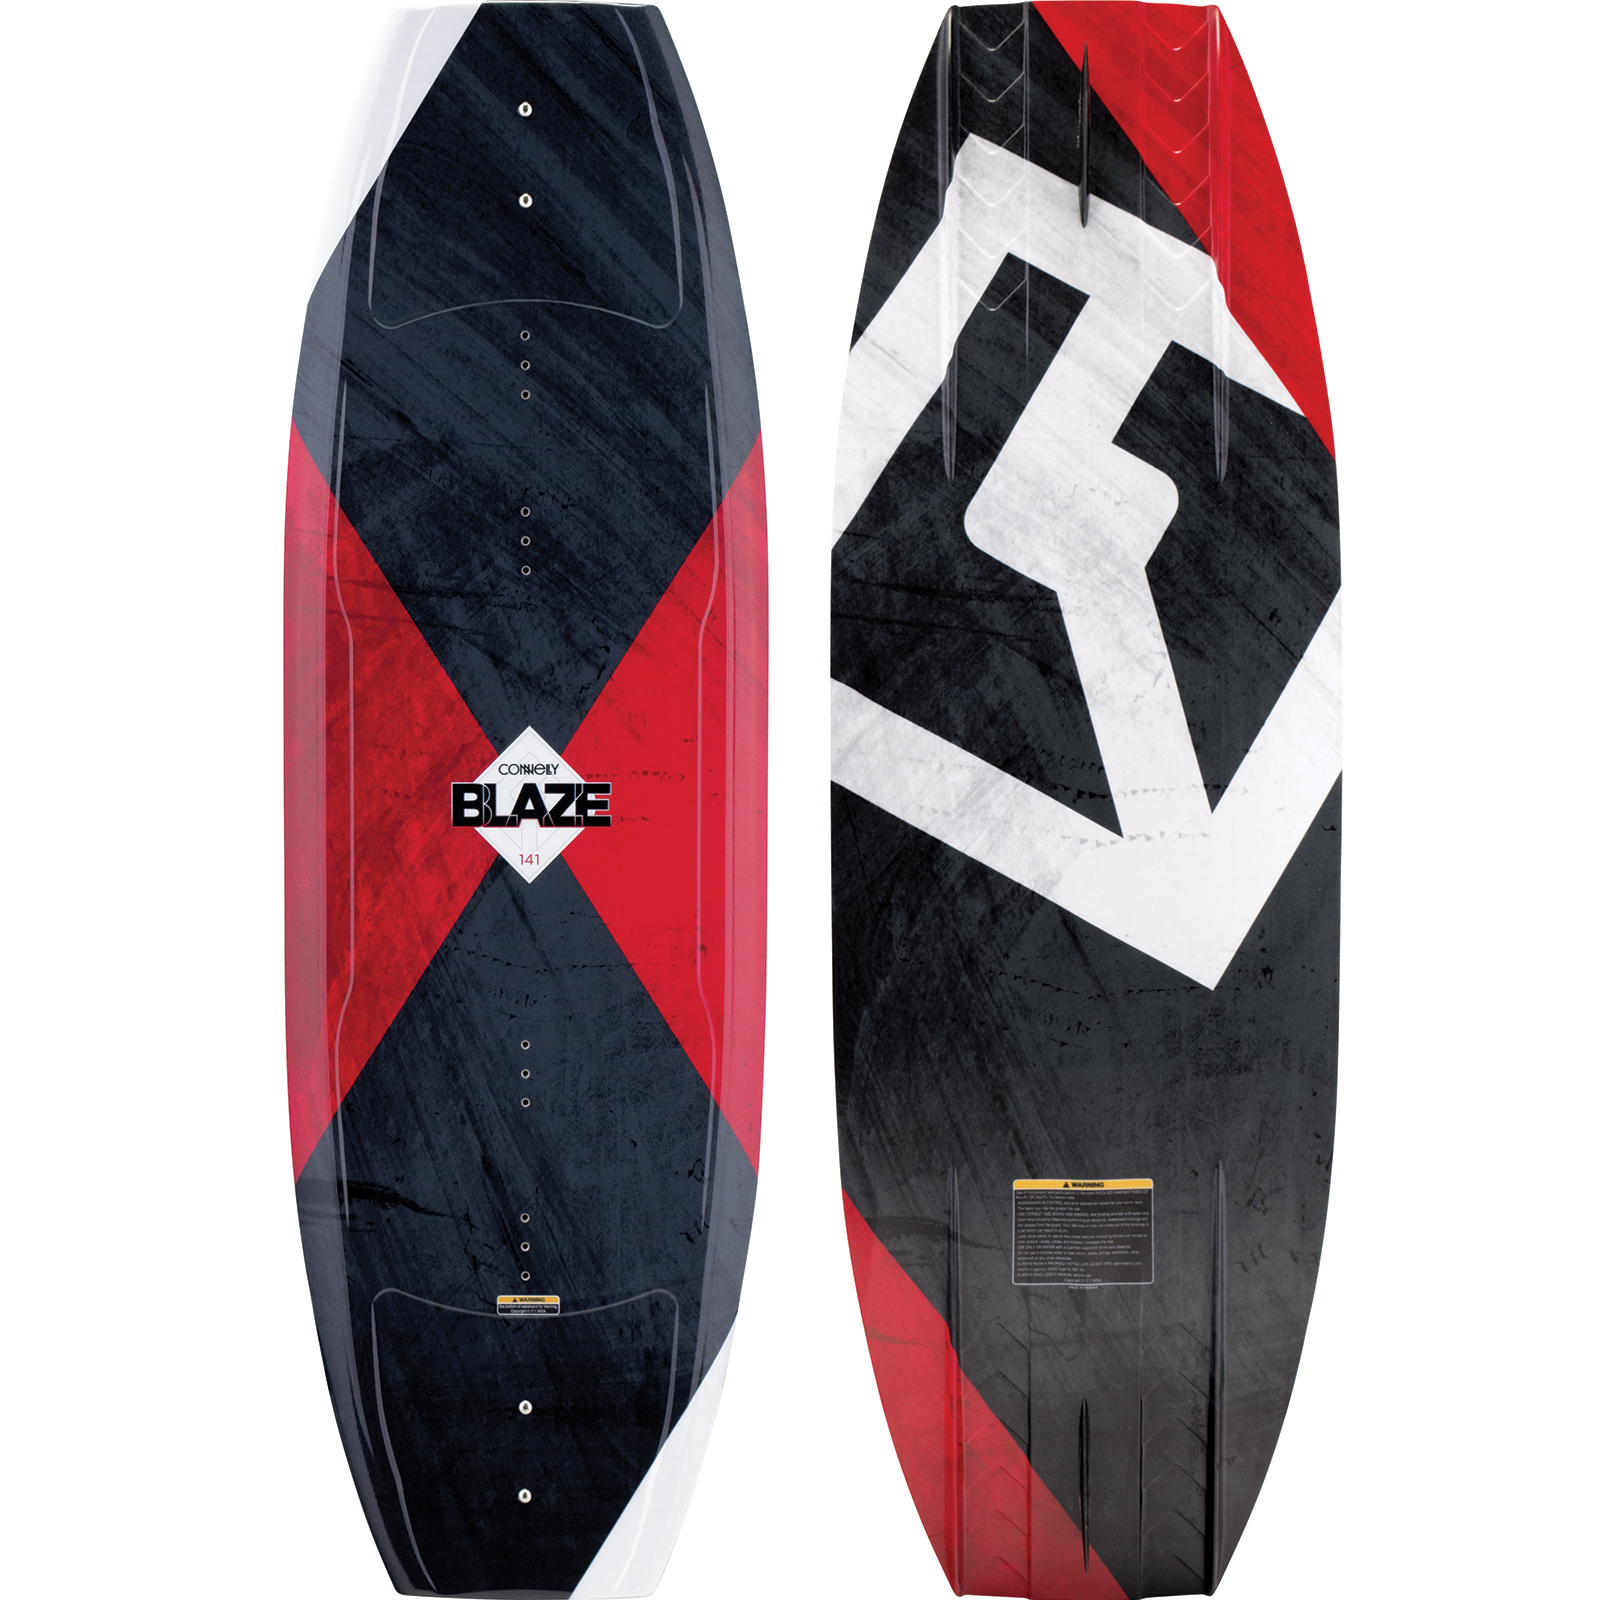 BLAZE 141 WAKEBOARD CONNELLY 2018